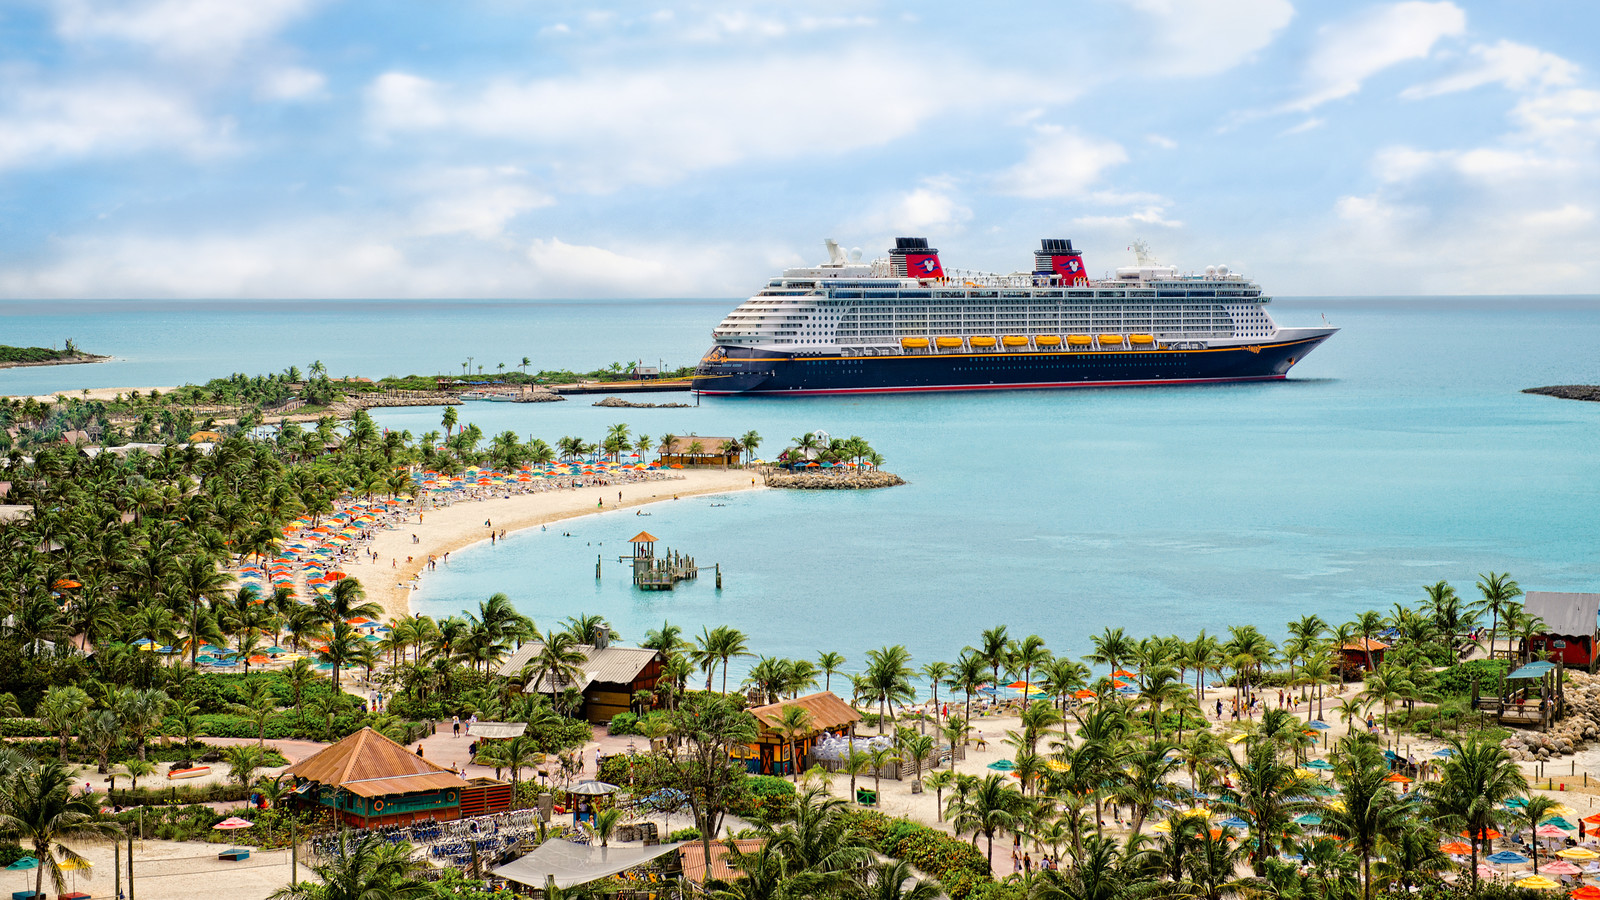 Job On Cruise: Work For Disney Cruise Line And Travel The